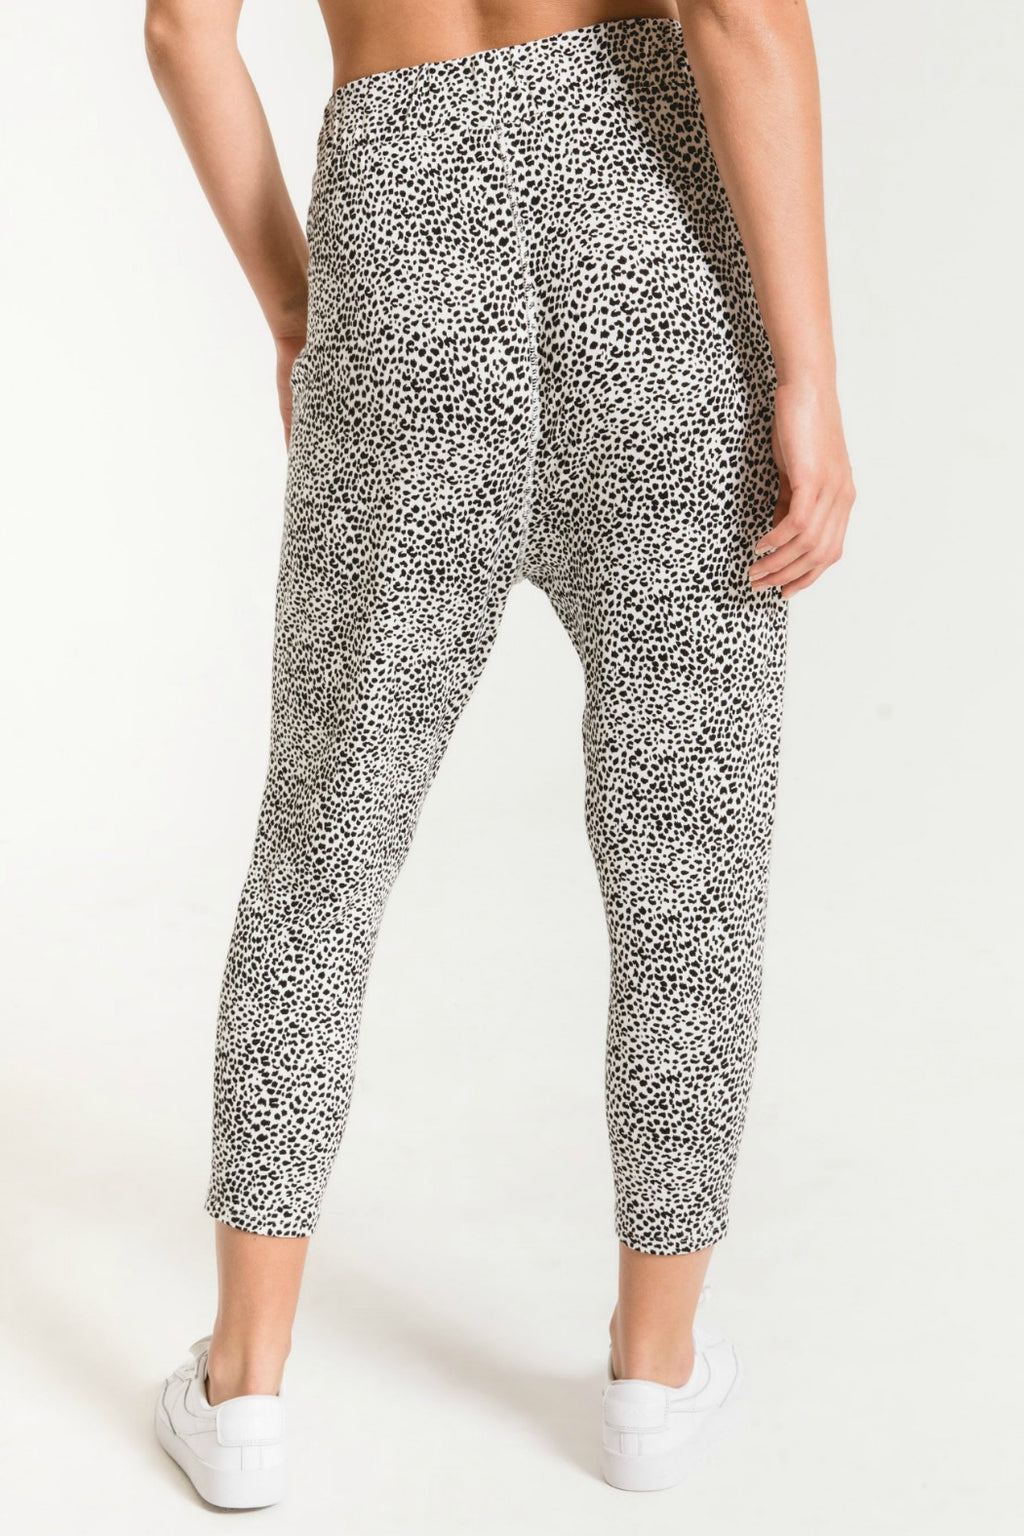 Z Supply Mini Leopard Pant in Off White